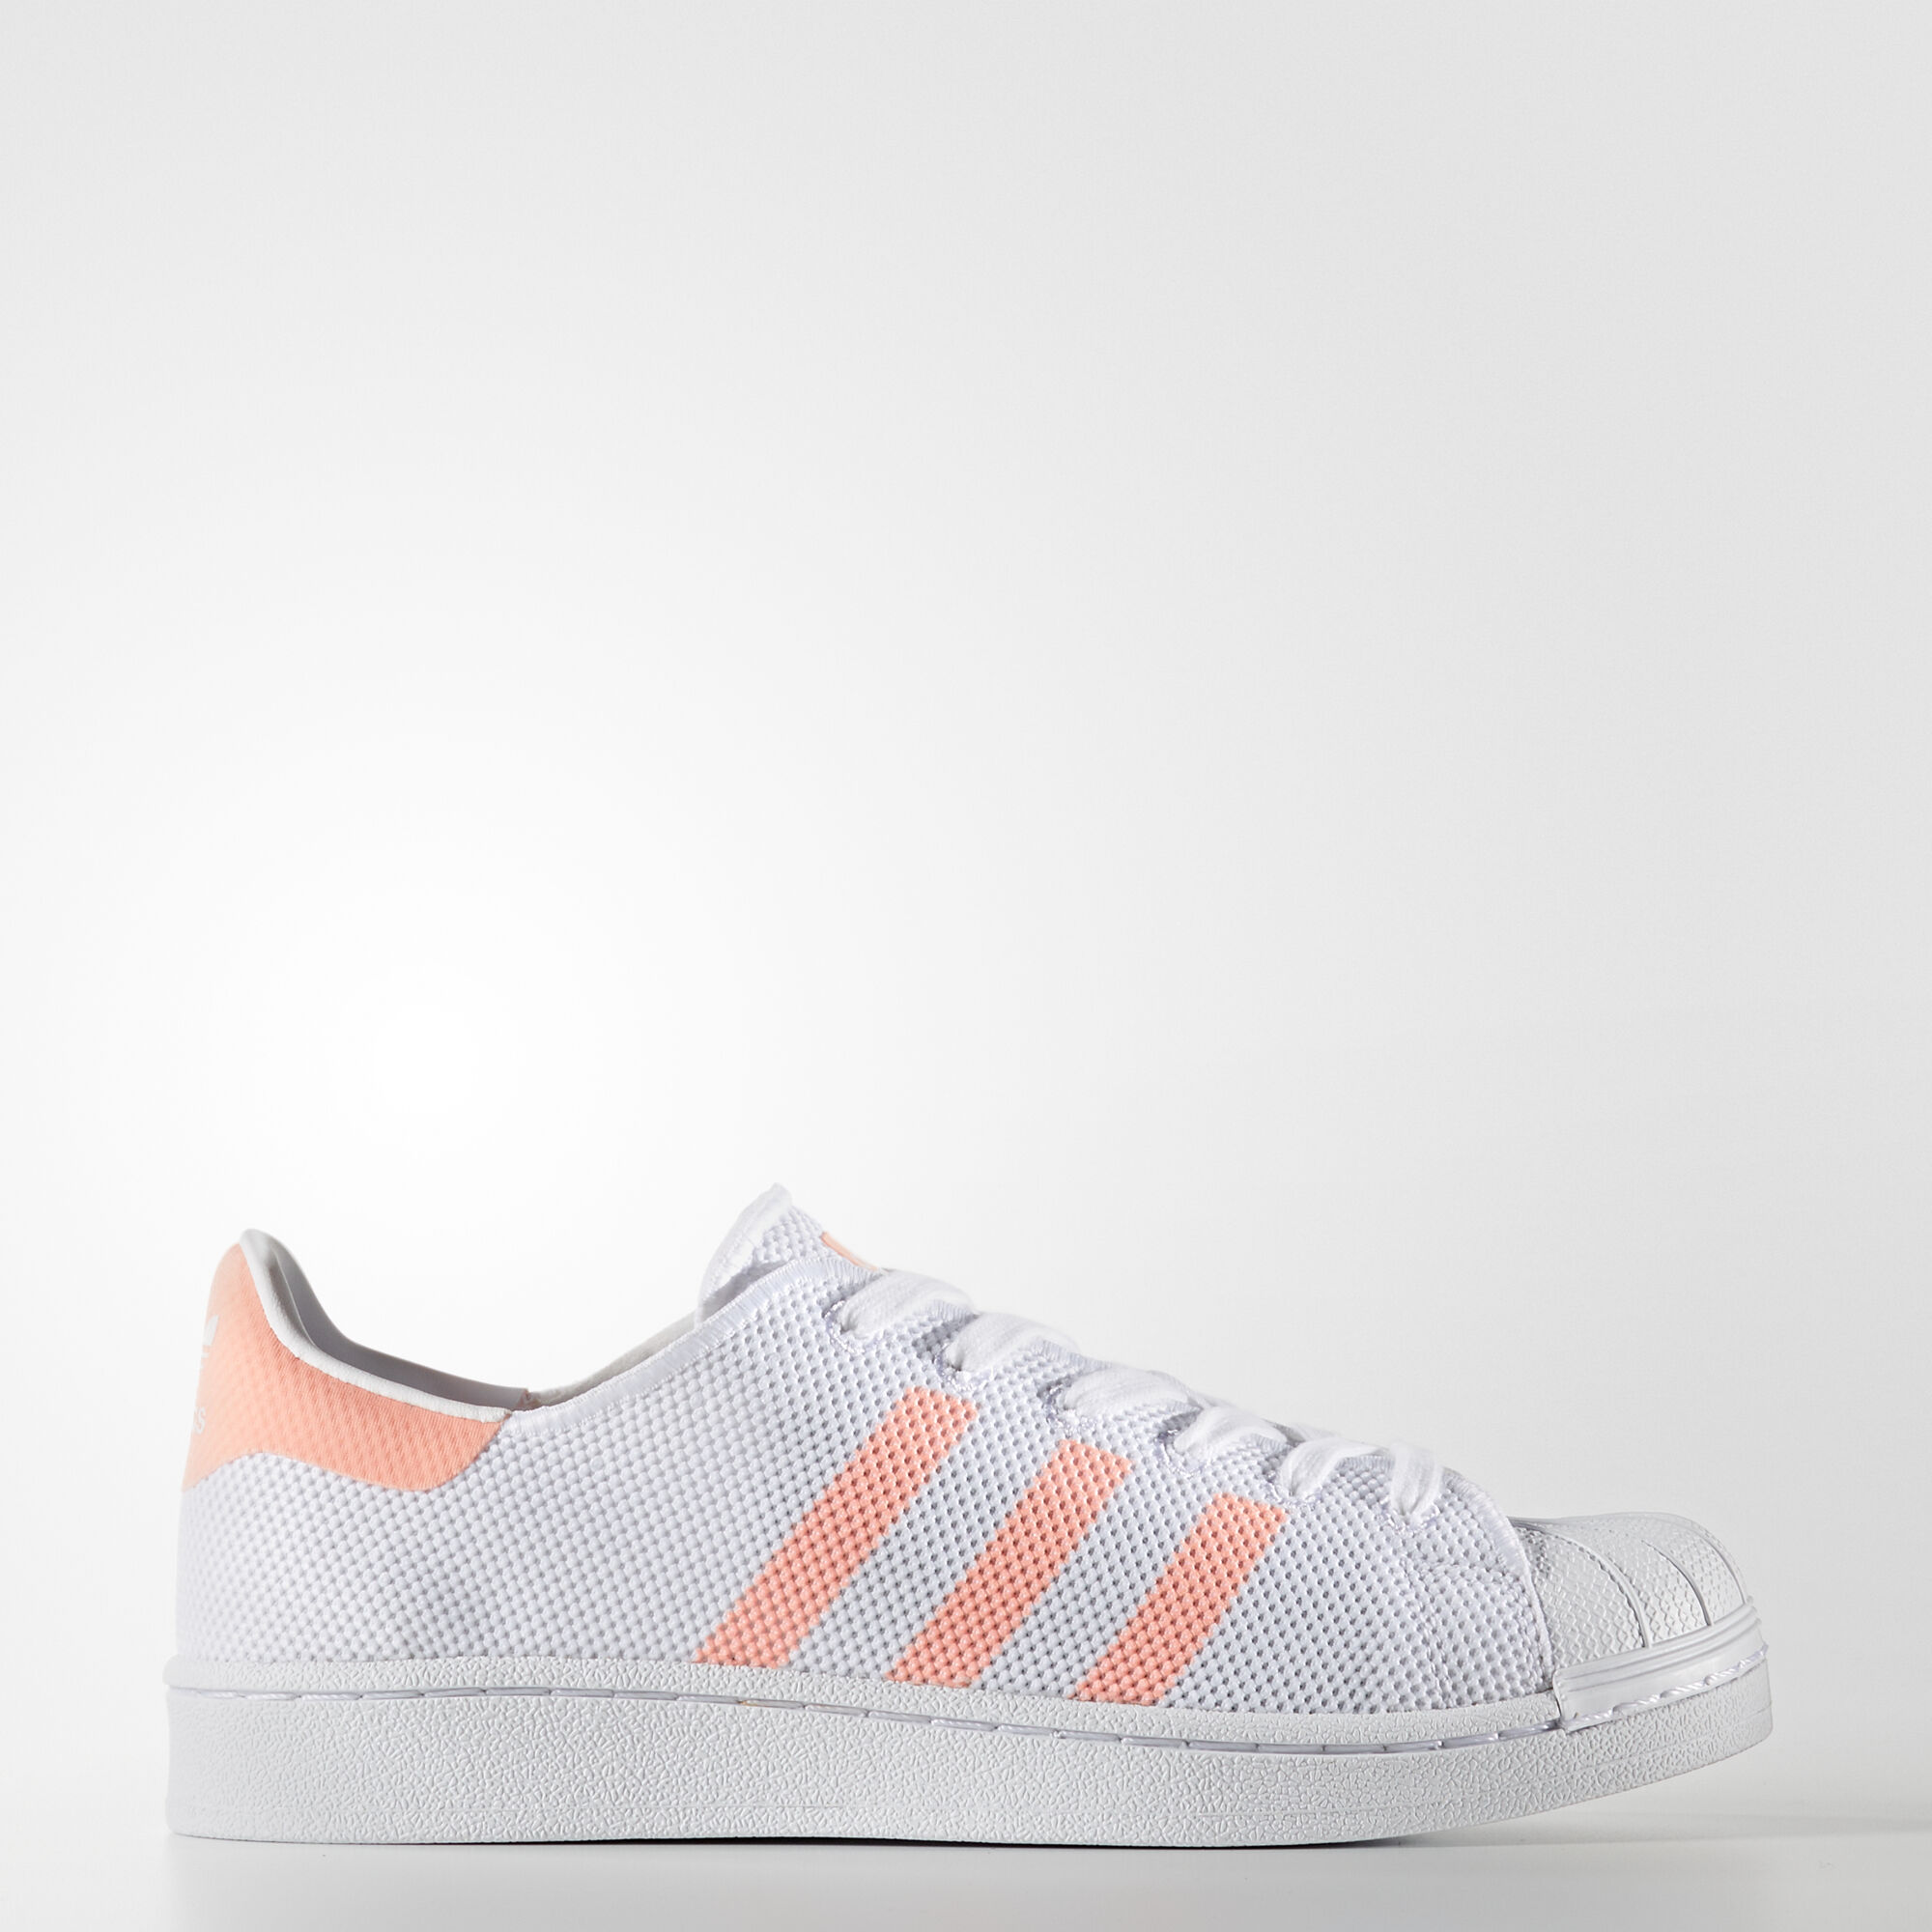 Where To Get Old Adidas Shoes